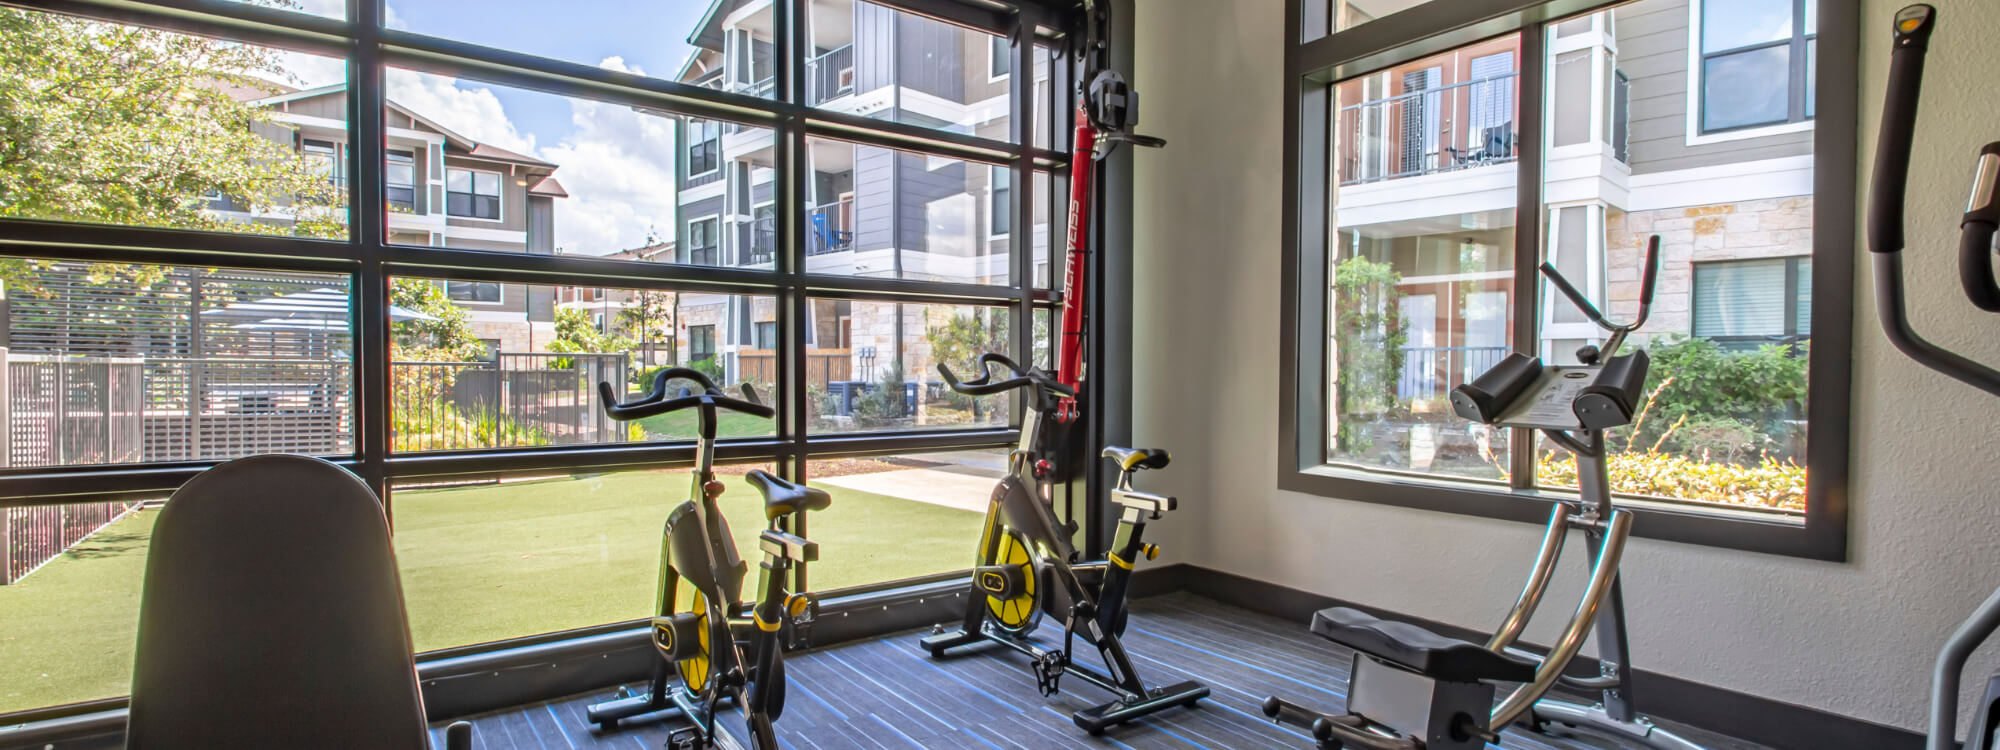 Fitness and Cardio with Operational Garage Door